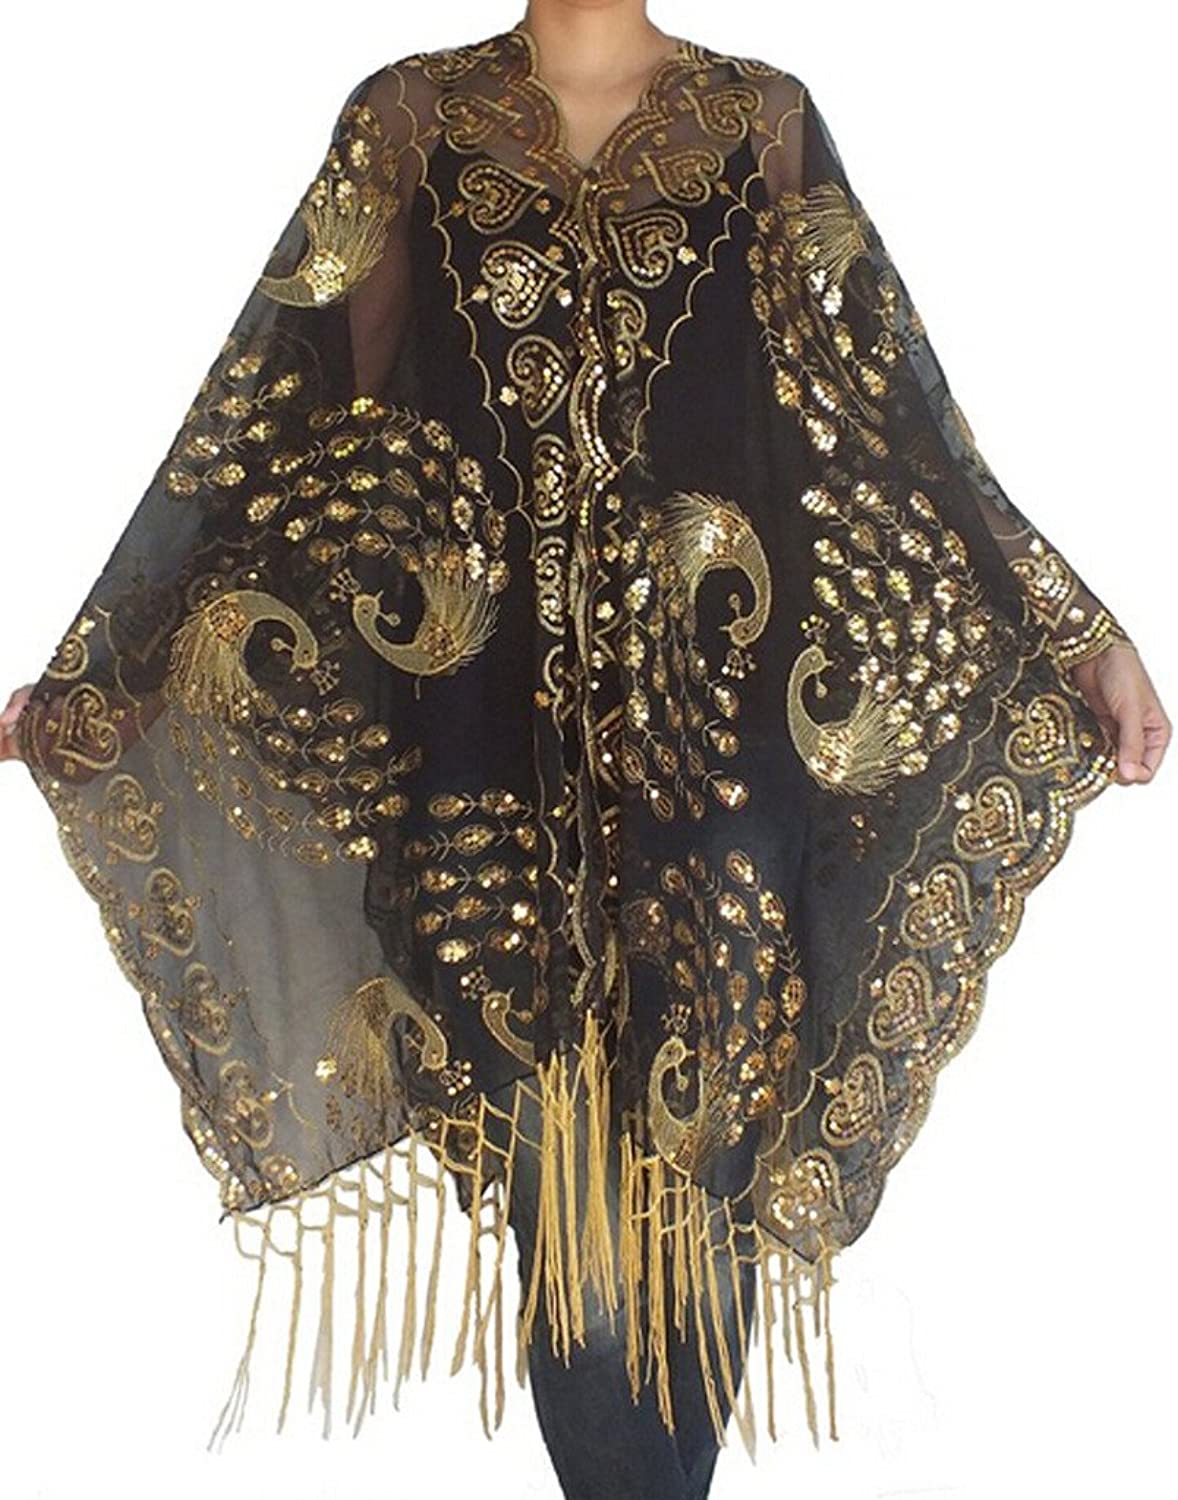 719fe65d0 1920s Accessories: Feather Boa, Cigarette Holder, Flask Peacock Phoenix  Embroidery Sequins Wedding Scarf